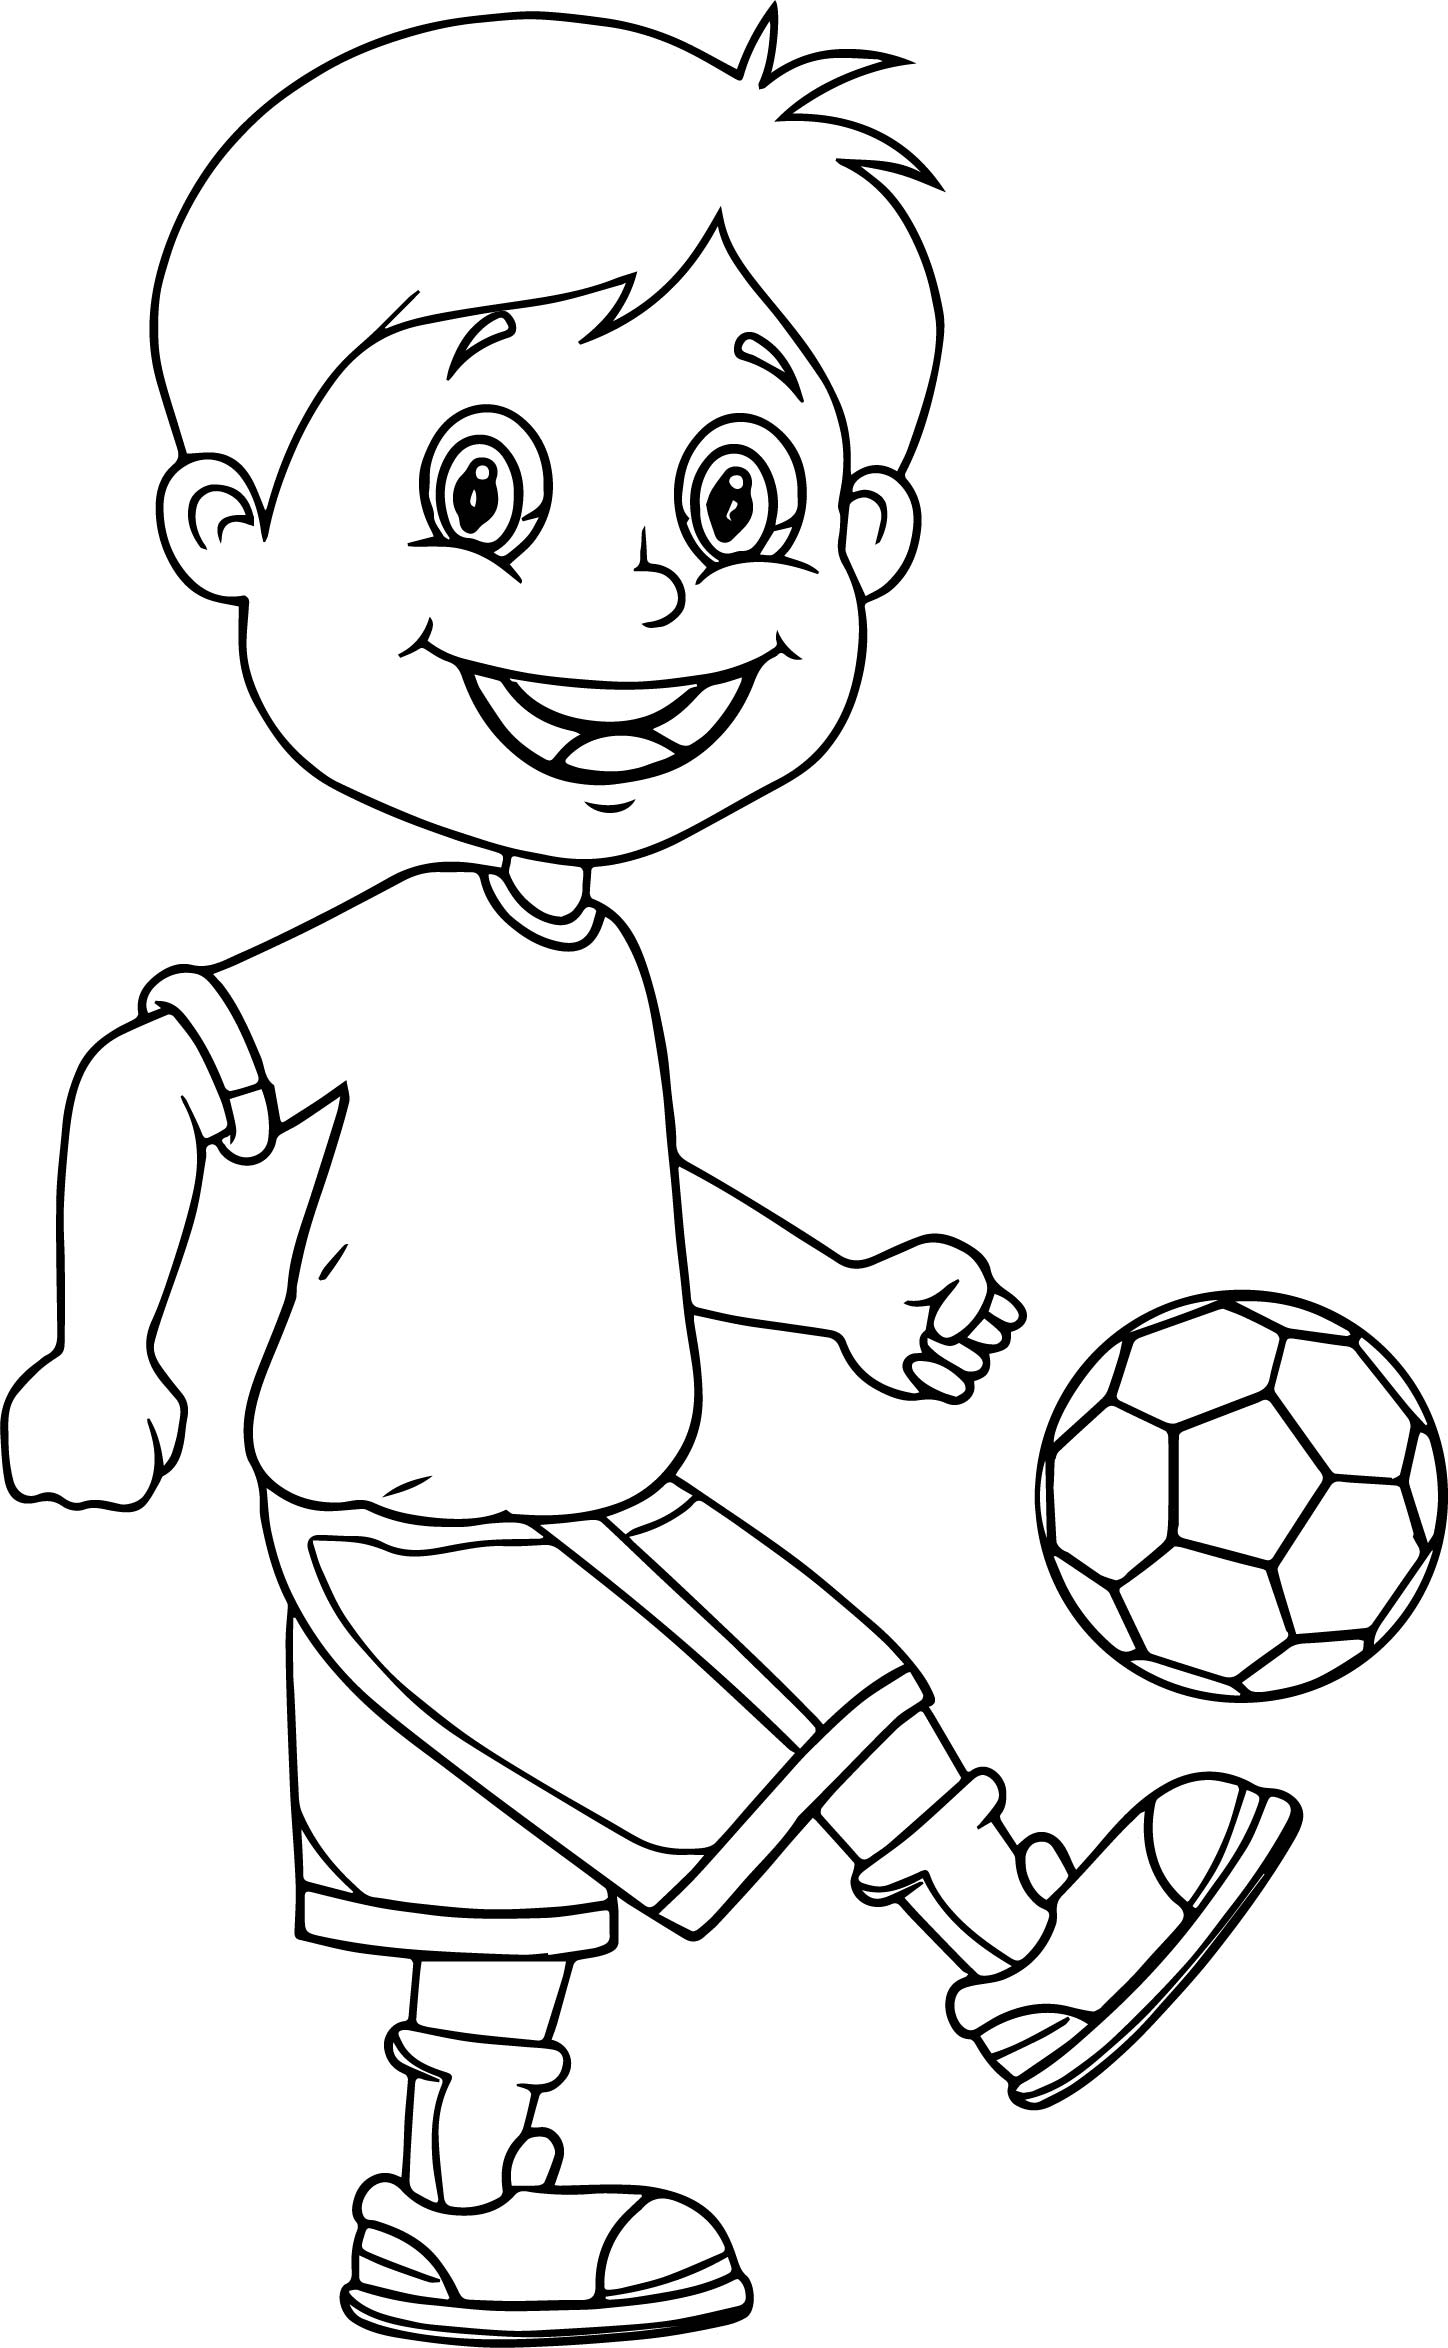 1448x2348 Boy Playing Football Drawing Bounce Ball Kids Soccer Playing